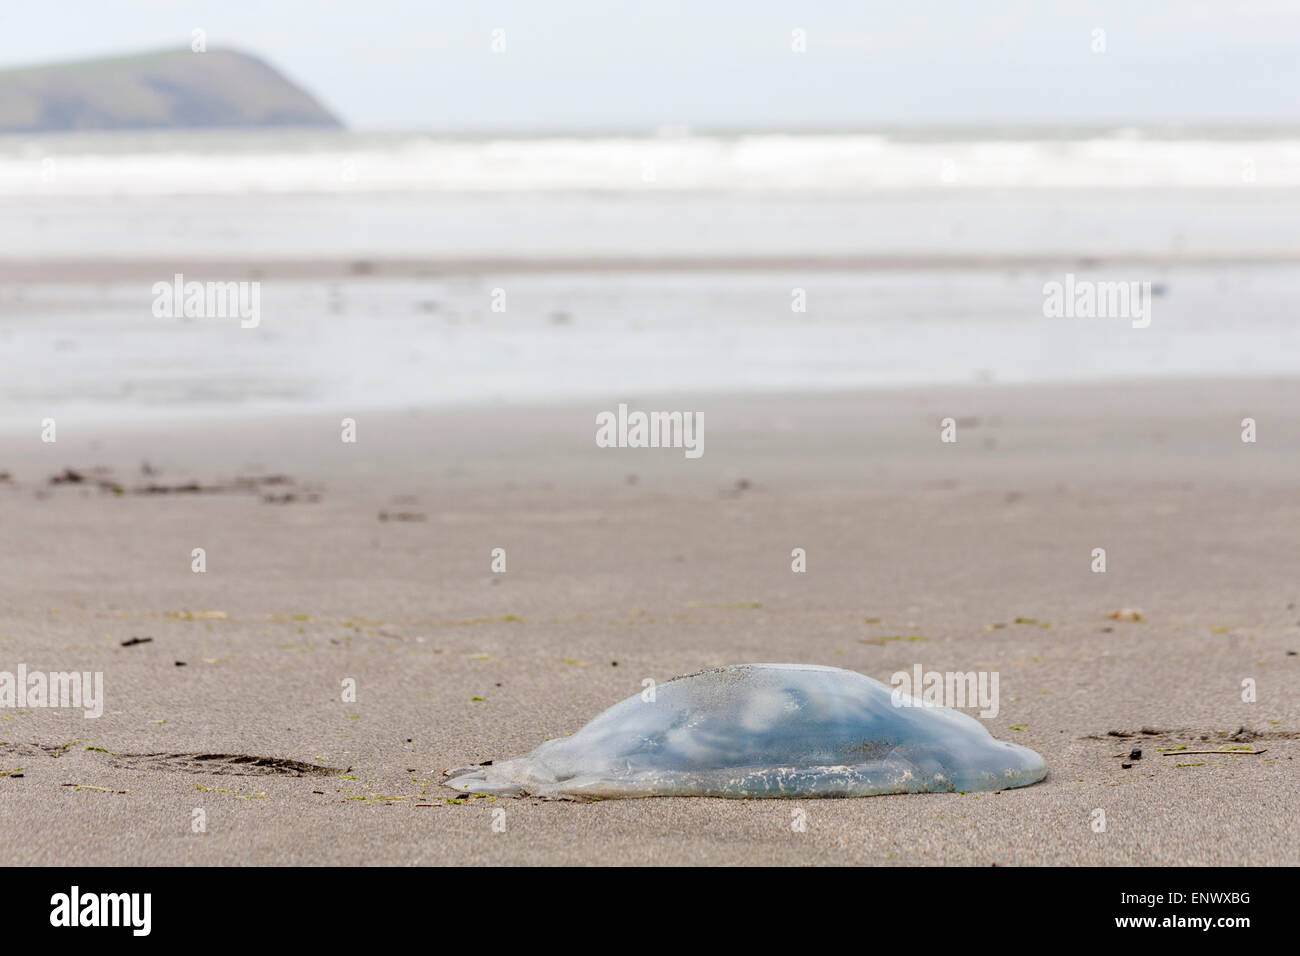 Jellyfish, jelly fish, washed up on Newport Sands Beach at Pembrokeshire Coast National Park, Wales in May Stock Photo